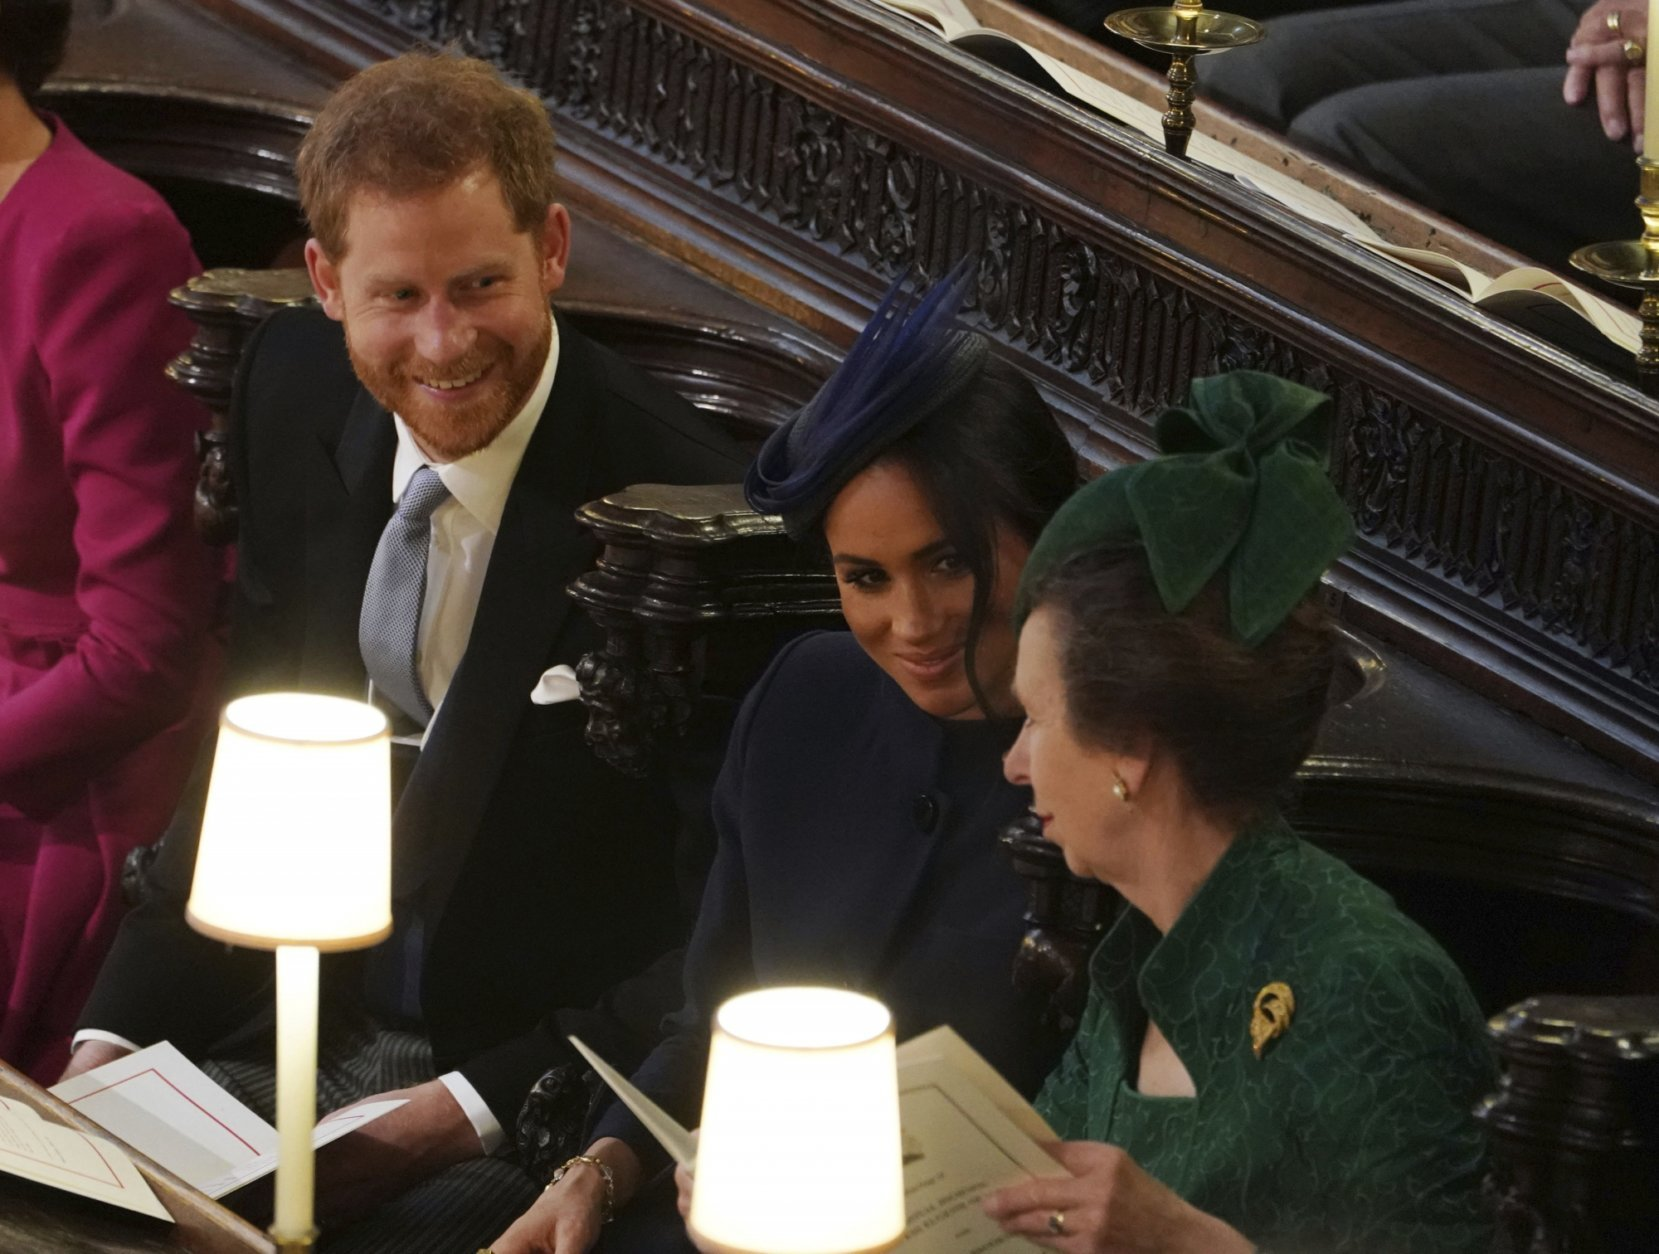 Britain's Prince Harry, Meghan, Duchess of Sussex and Britain's Princess Anne, from left, attend the wedding of Princess Eugenie of York and Jack Brooksbank in St George's Chapel, Windsor Castle, near London, England, Friday Oct. 12, 2018. (Owen Humphreys, Pool via AP)